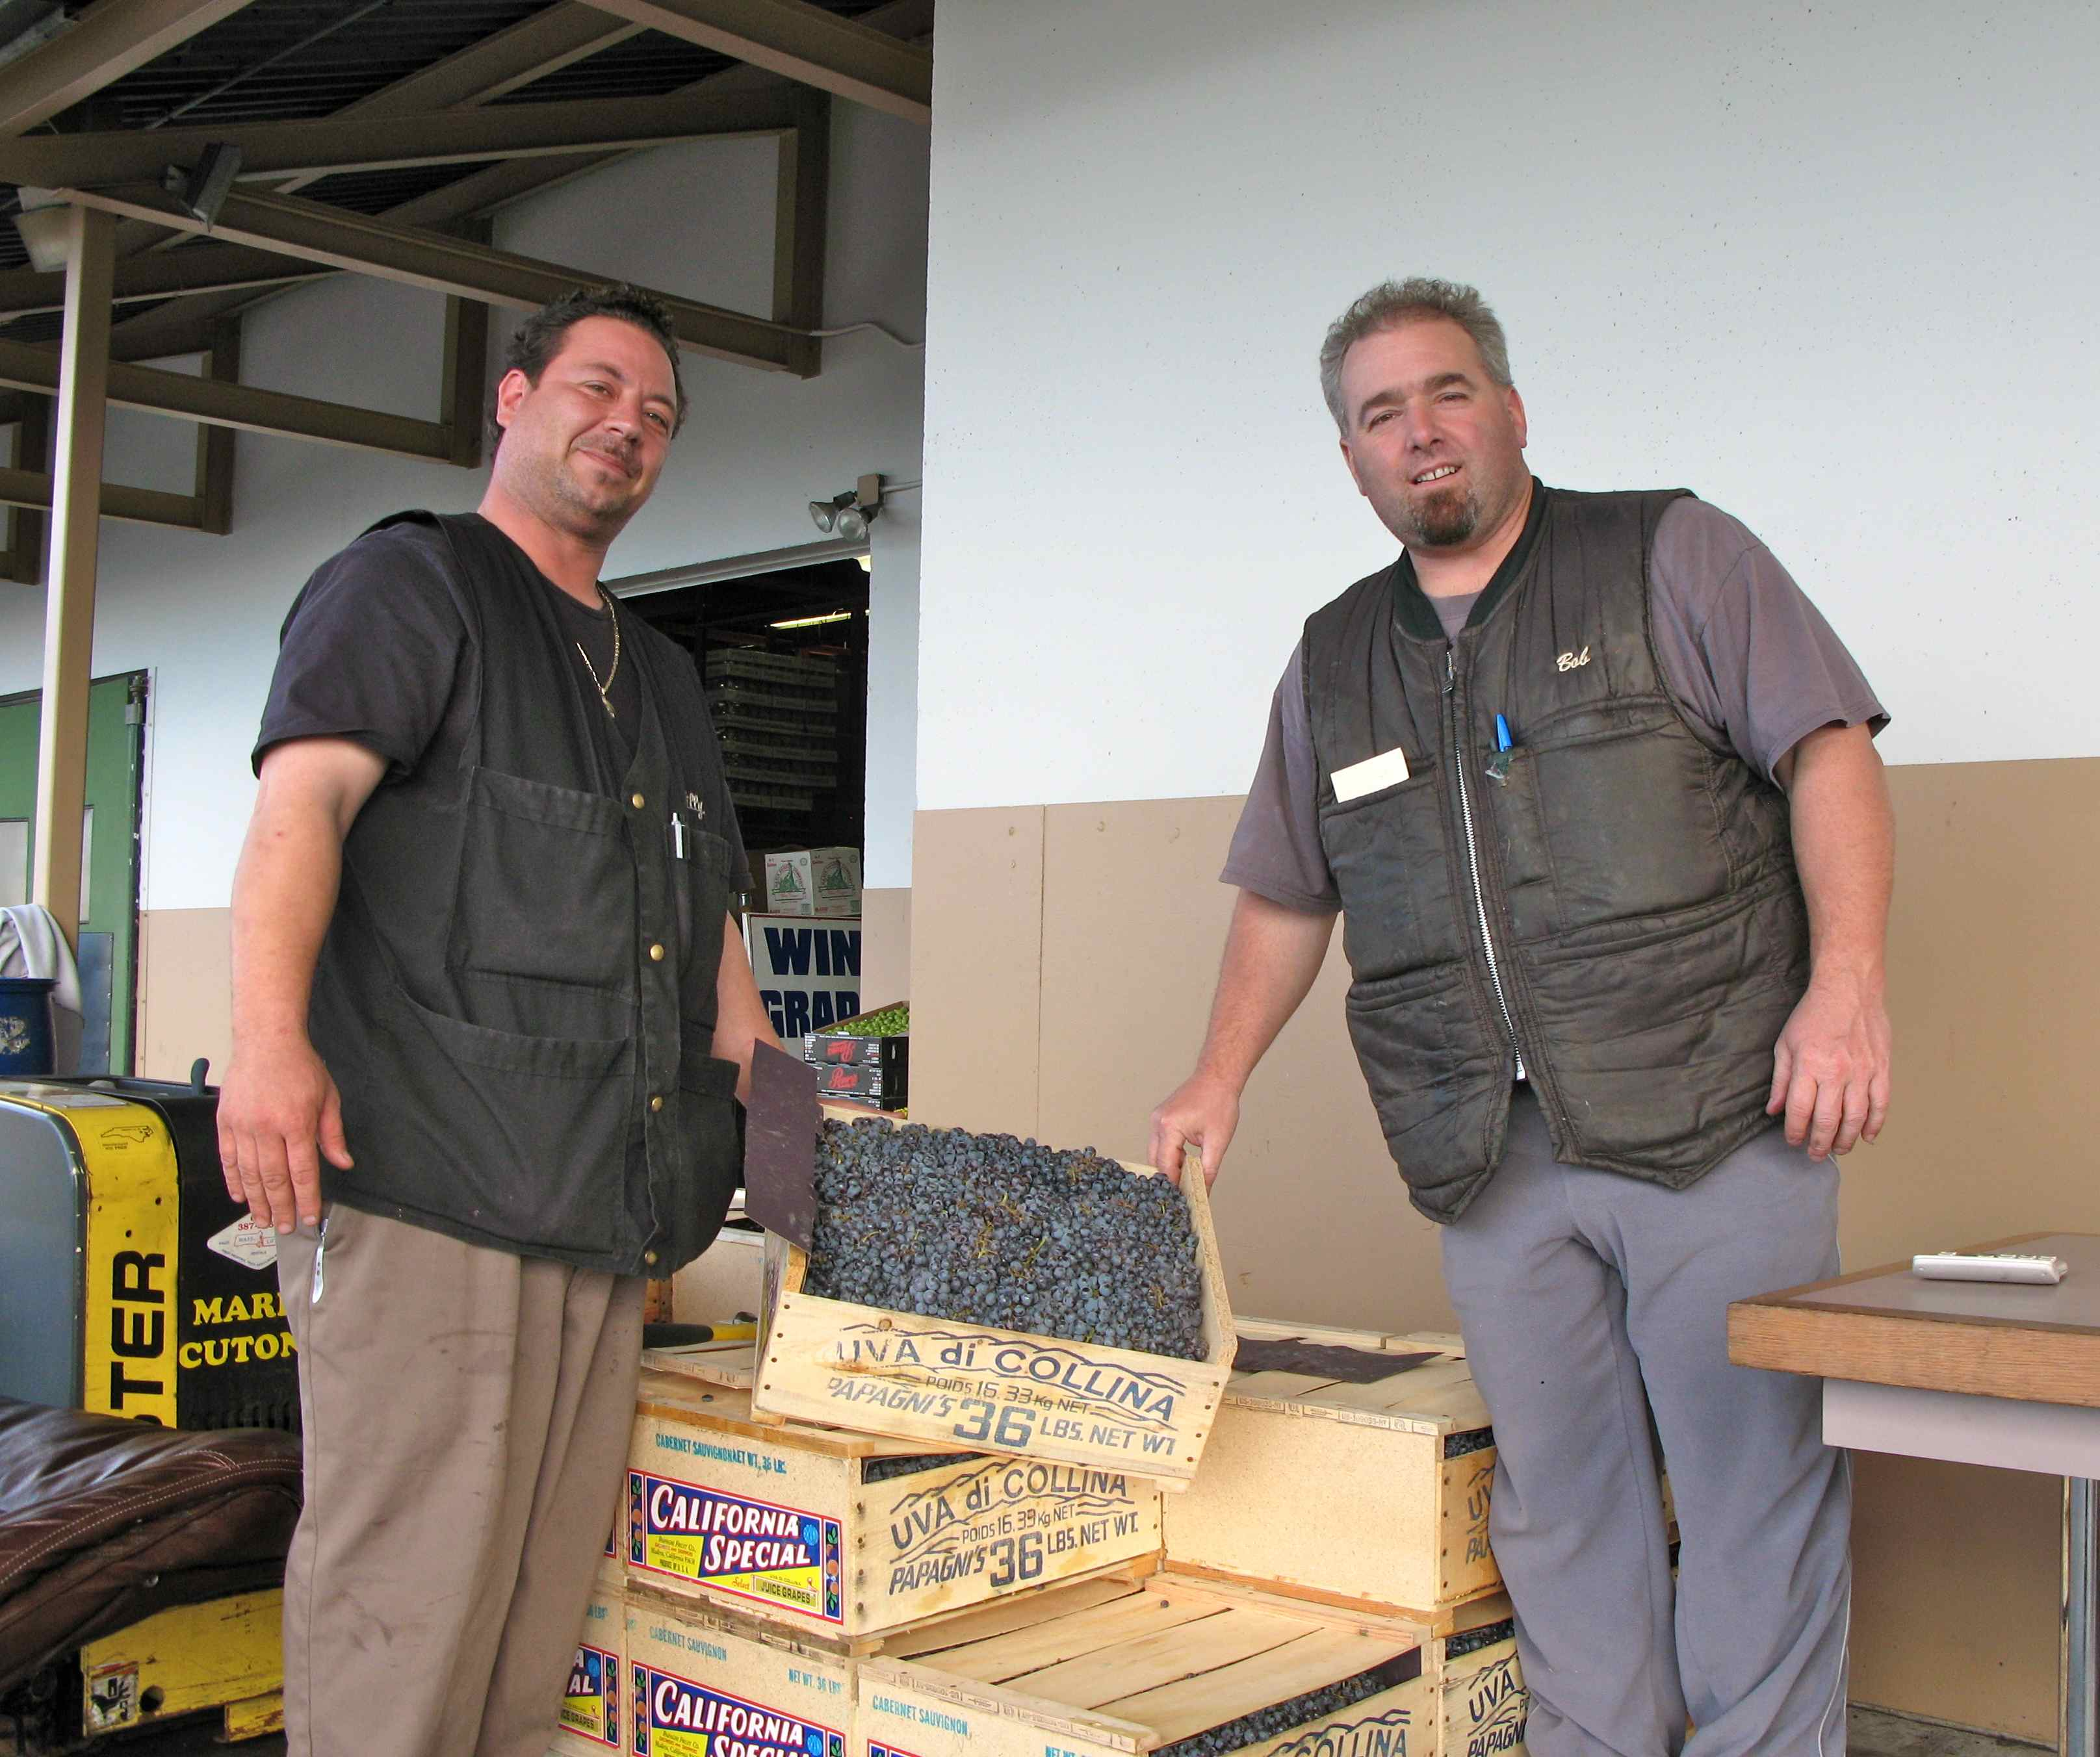 The wine grapes are available only in the fall and are shipped east from California to the produce center in Chelsea, Mass. Above, two friendly wine salesmen at the M. Cutone Mushroom Co.